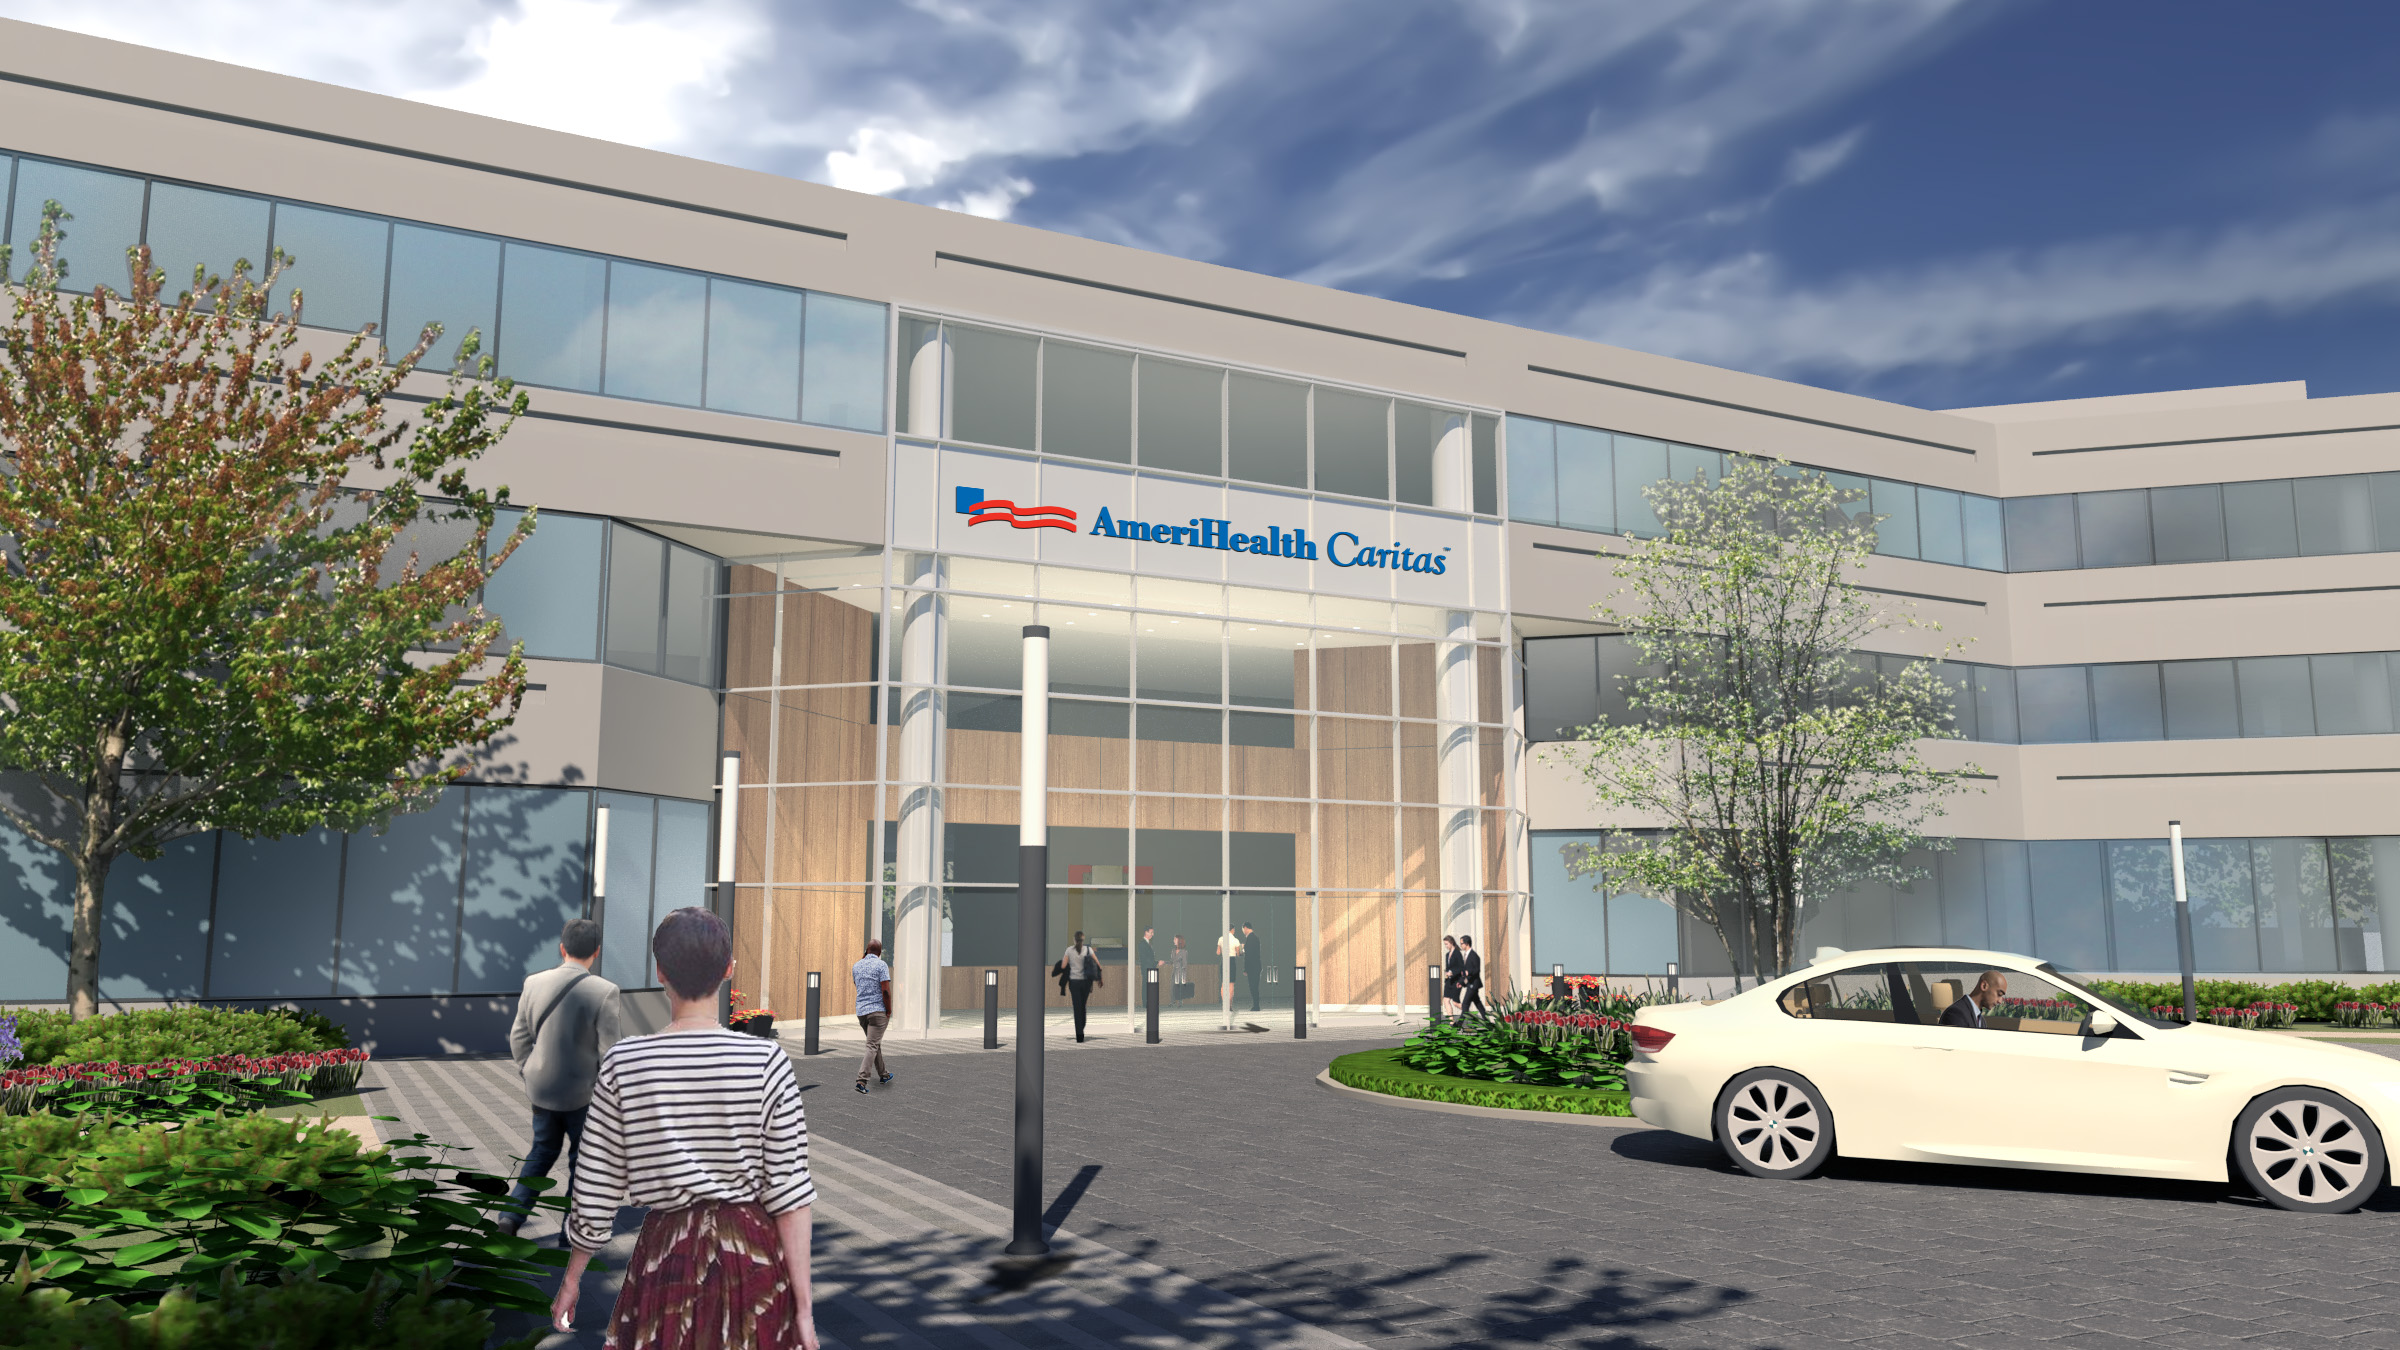 Artist´s rendering of AmeriHealth Caritas´ current space at the Airport Business Center offices after renovations. Credit: